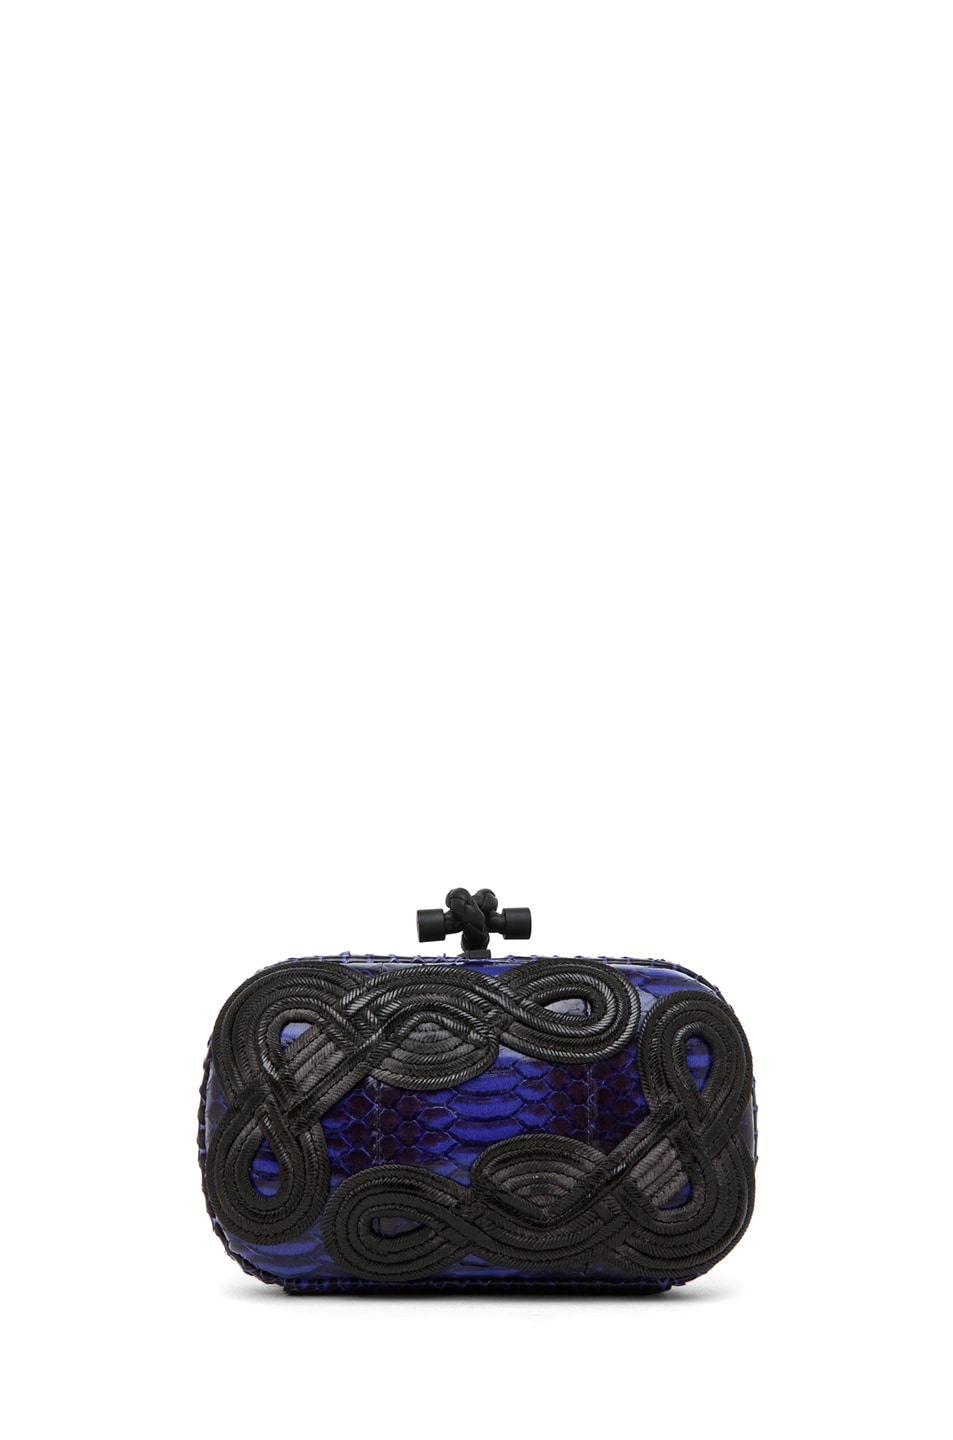 Image 2 of Bottega Veneta Knot Snakeskin Passamaneria Clutch in Purple